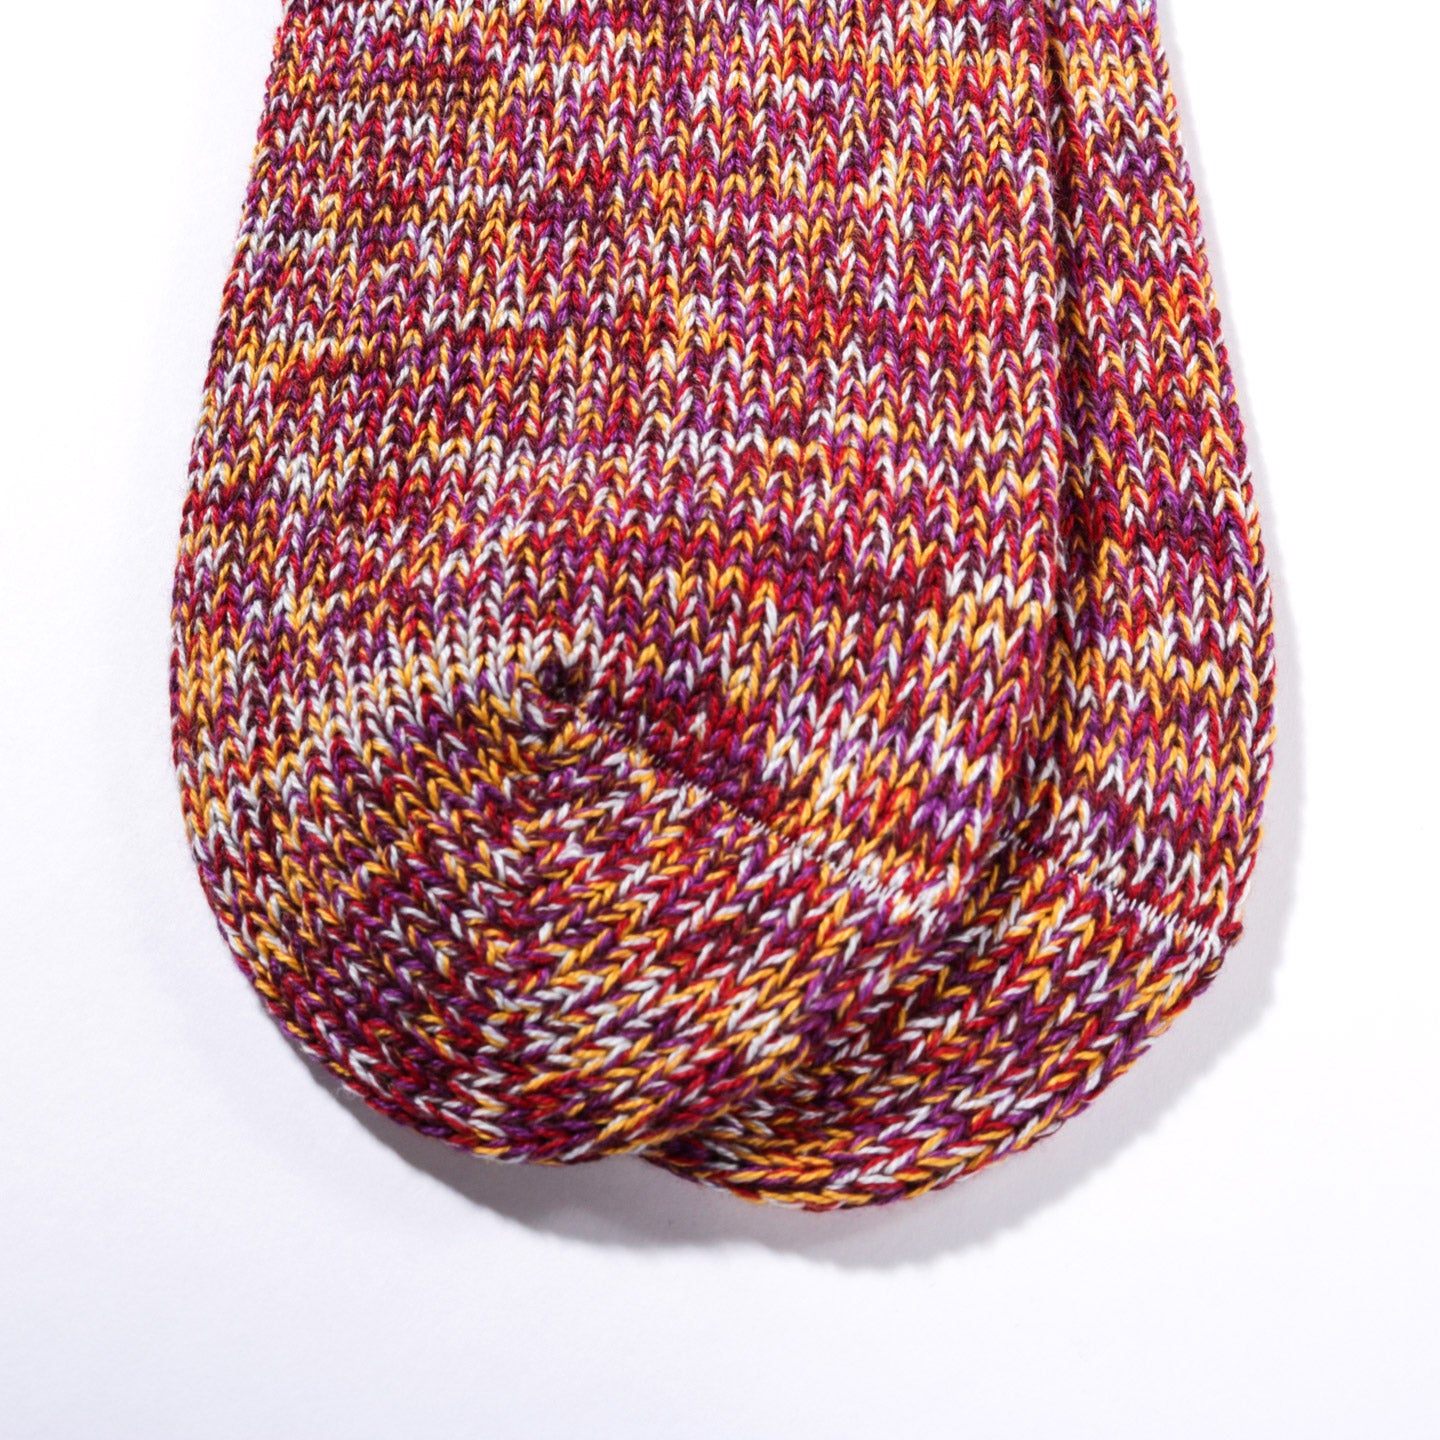 KAPITAL 56 YARNS GOGH GRANDRELLE SOCKS BURGUNDY